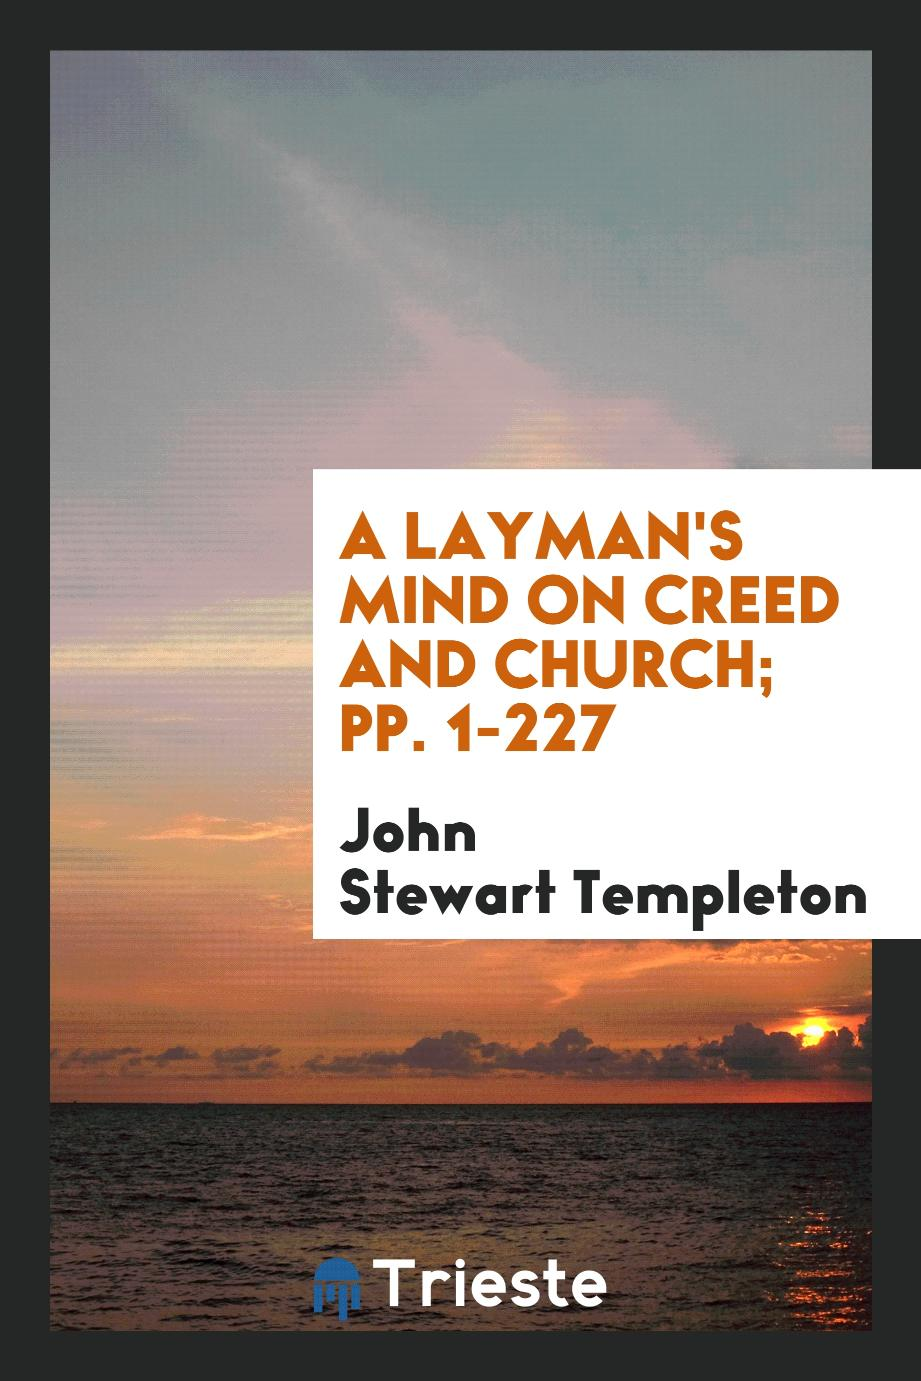 A Layman's Mind on Creed and Church; pp. 1-227